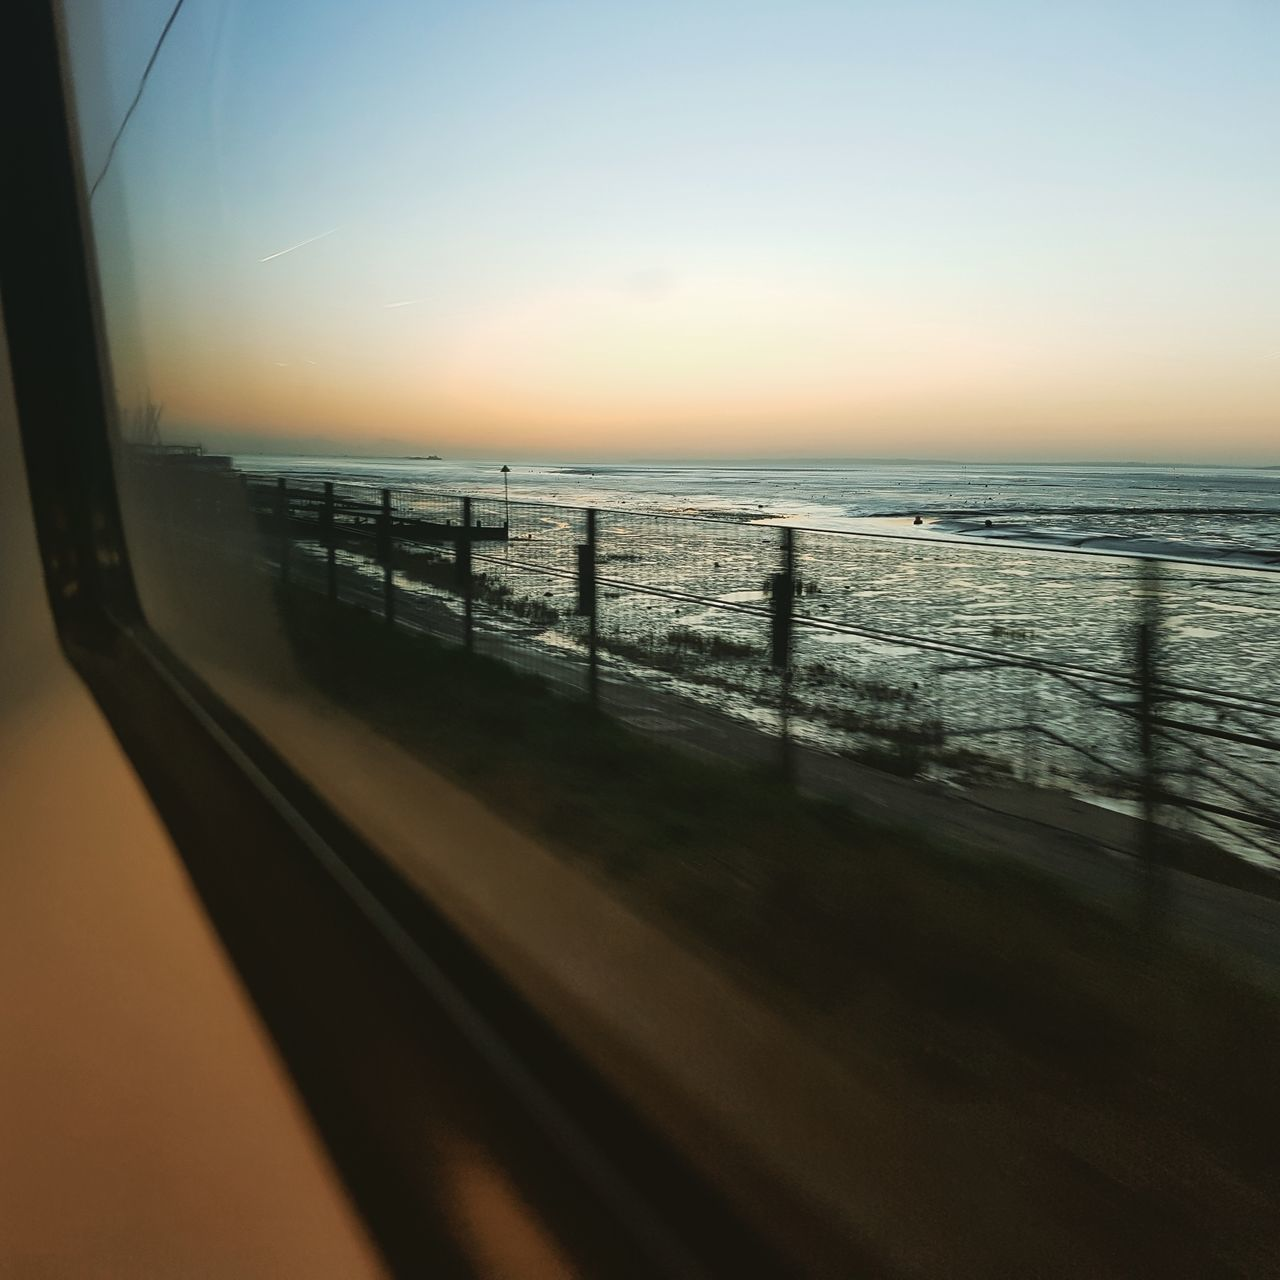 Sea Horizon Over Water Water Sky Beach Outdoors No People View From The Train Southend On Sea Transportation